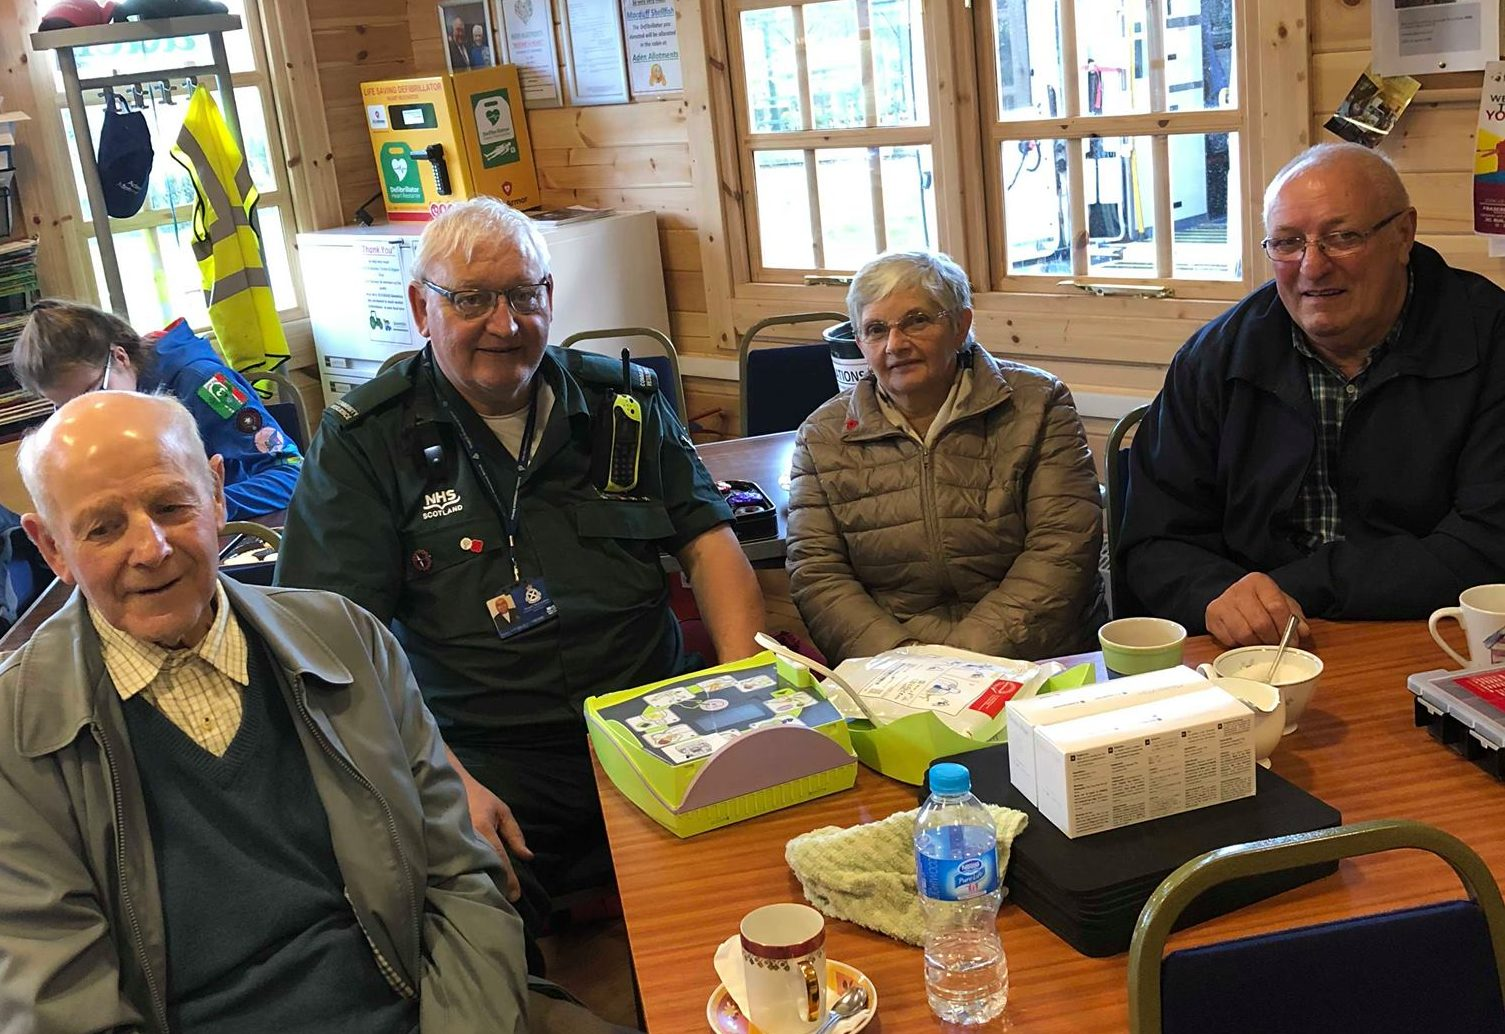 Some of the group who took part in Saturday's Restart a Heart day at the cabin at Aden Allotments.